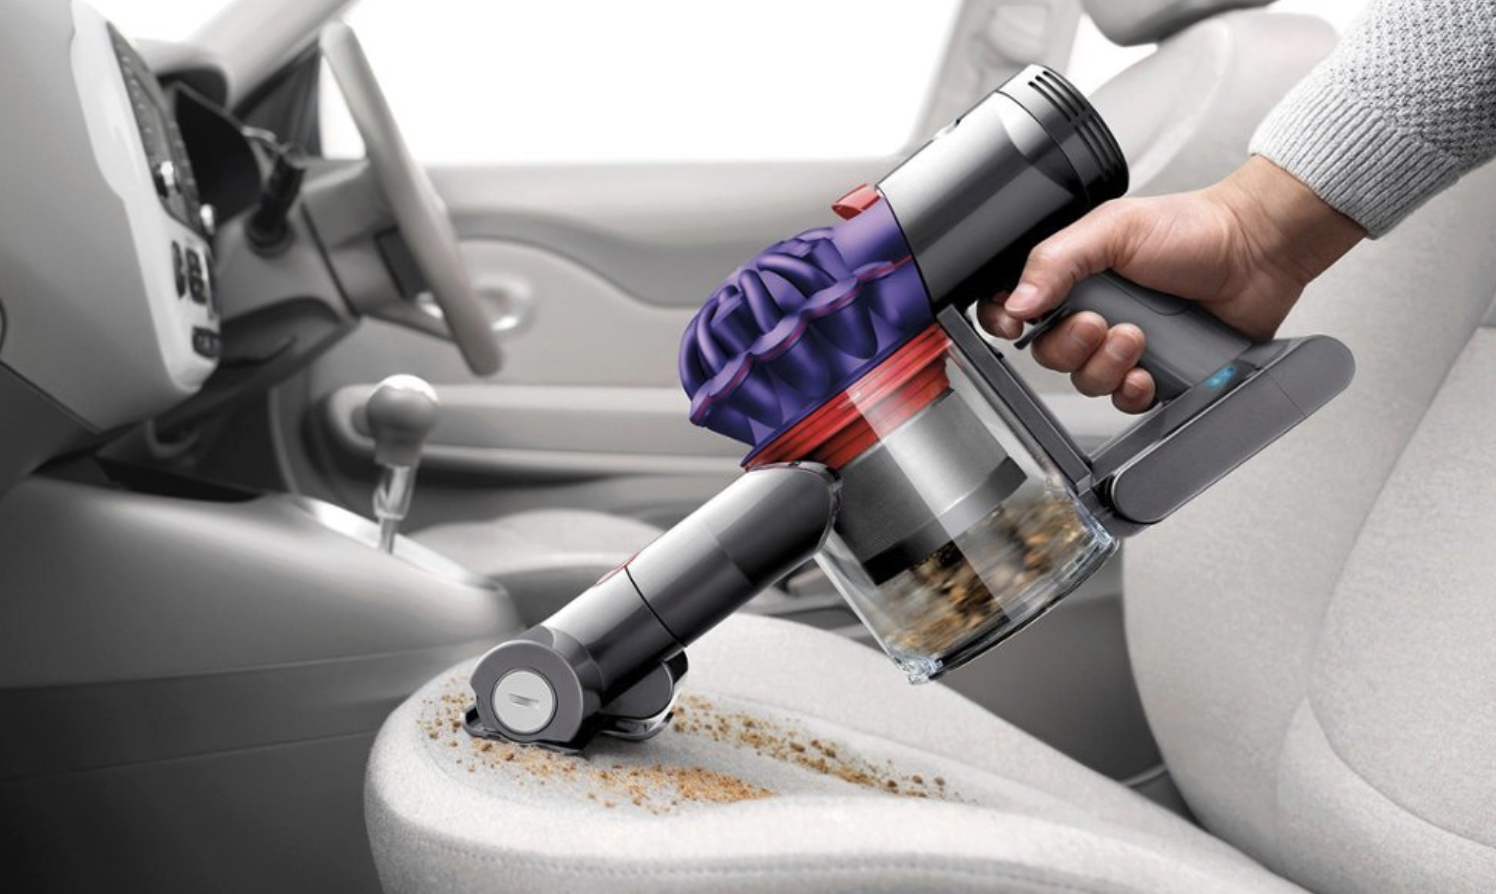 Best car vacuums: Clean up pet hair, crumbs, and more with ease